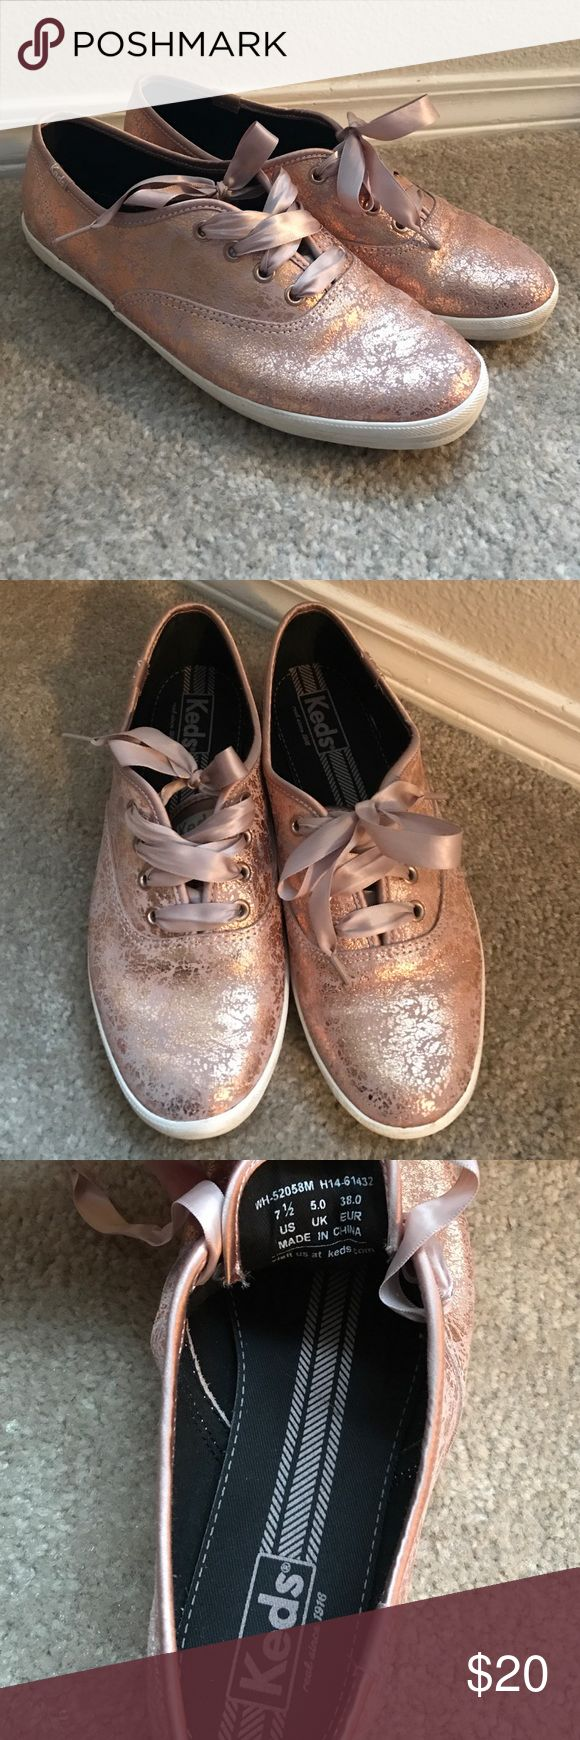 Keds Champion Sneakers - Rose Gold Leather - 7.5 This pair of Keds is a size 7.5 (could probably also fit an 8). I wear a 7-7.5 wide and these are a bit too long. Therefore, they've only been worn once and are in excellent used condition--almost new! They have leather uppers that are a kind of cracked metallic rose gold. Not too flashy or obnoxious, but definitely just a little fancy :) They come with matching satin shoelaces, but would also go with white (not included). Keds Shoes Sneakers